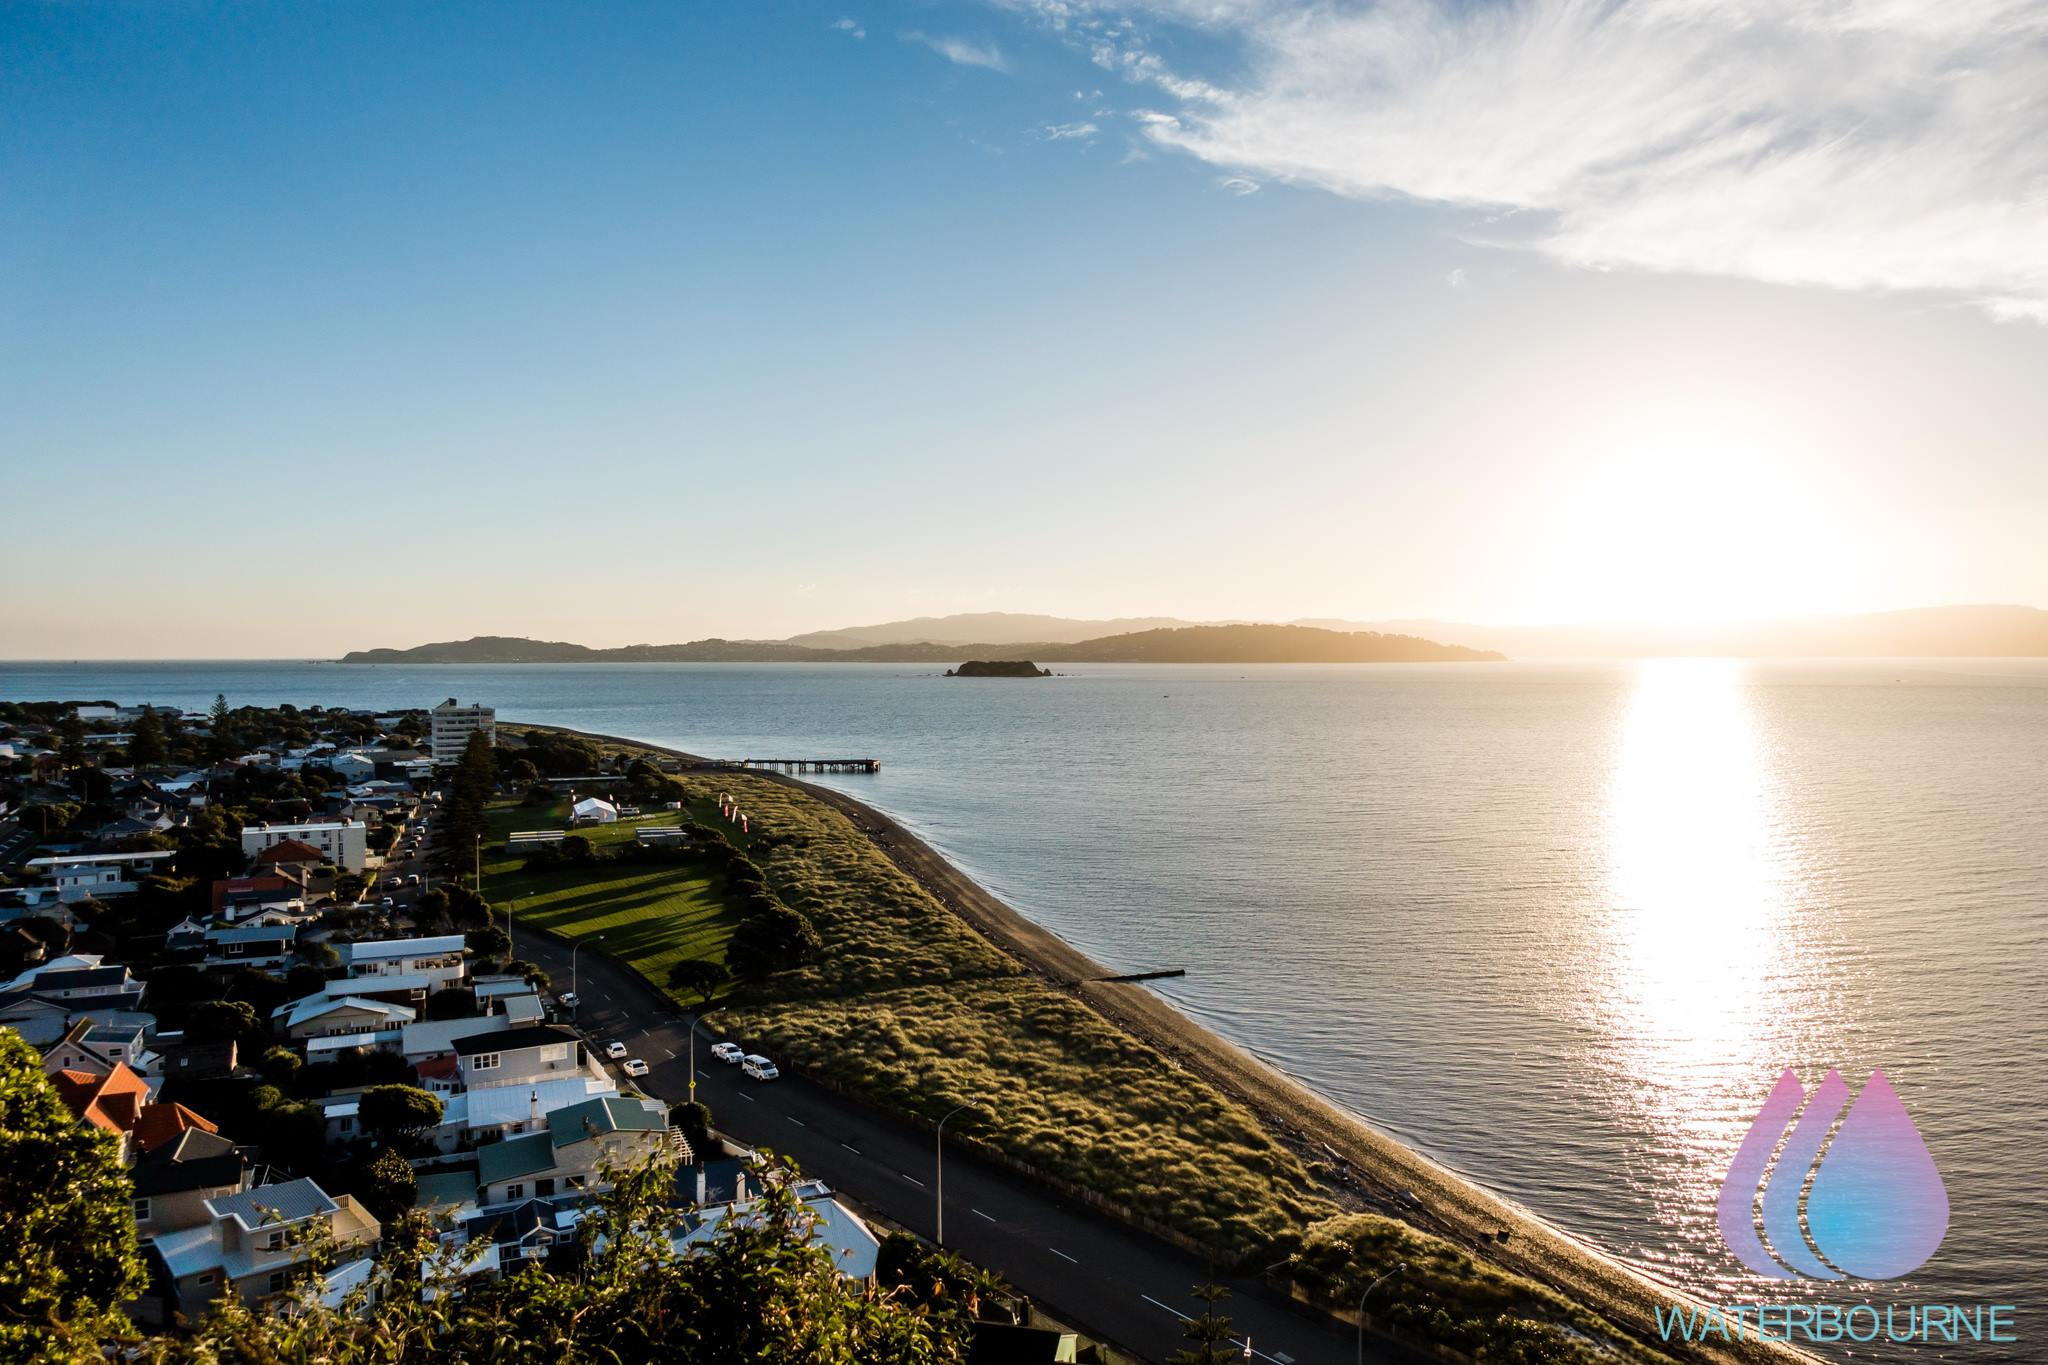 Eastbourne-Lower-Hutt-Waterbourne